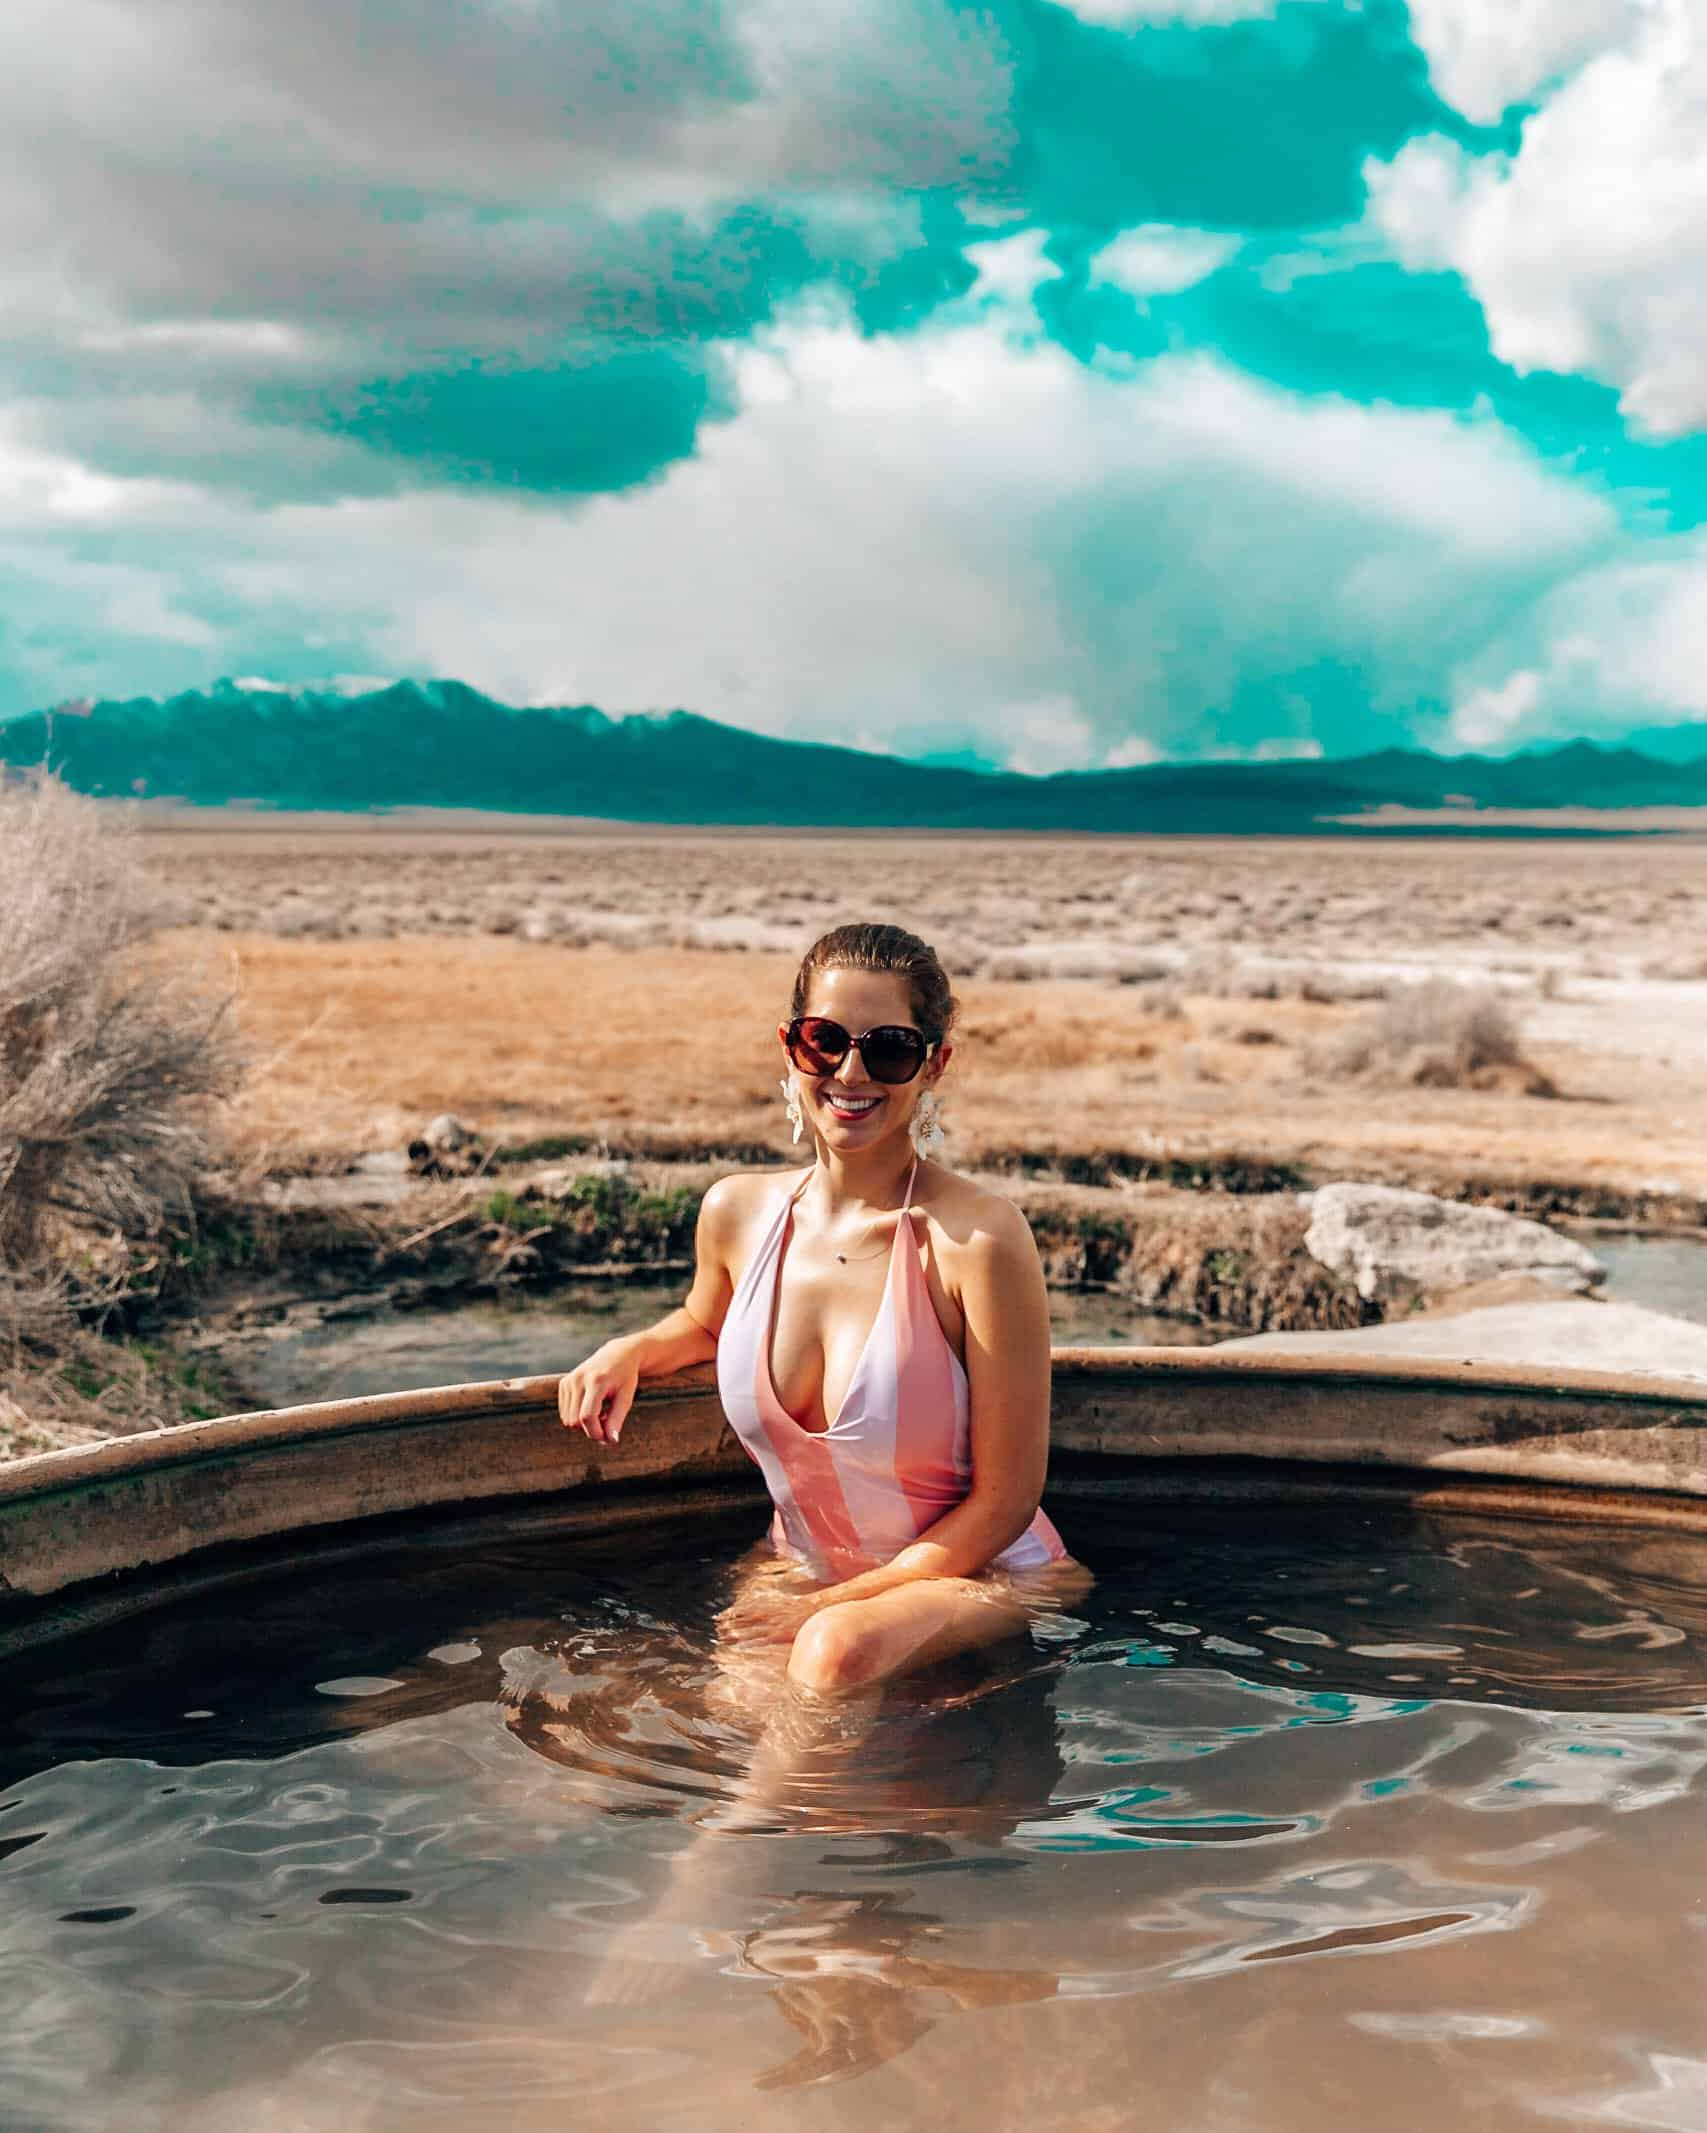 Spencer Hot Springs in Nevada - The Next Trip